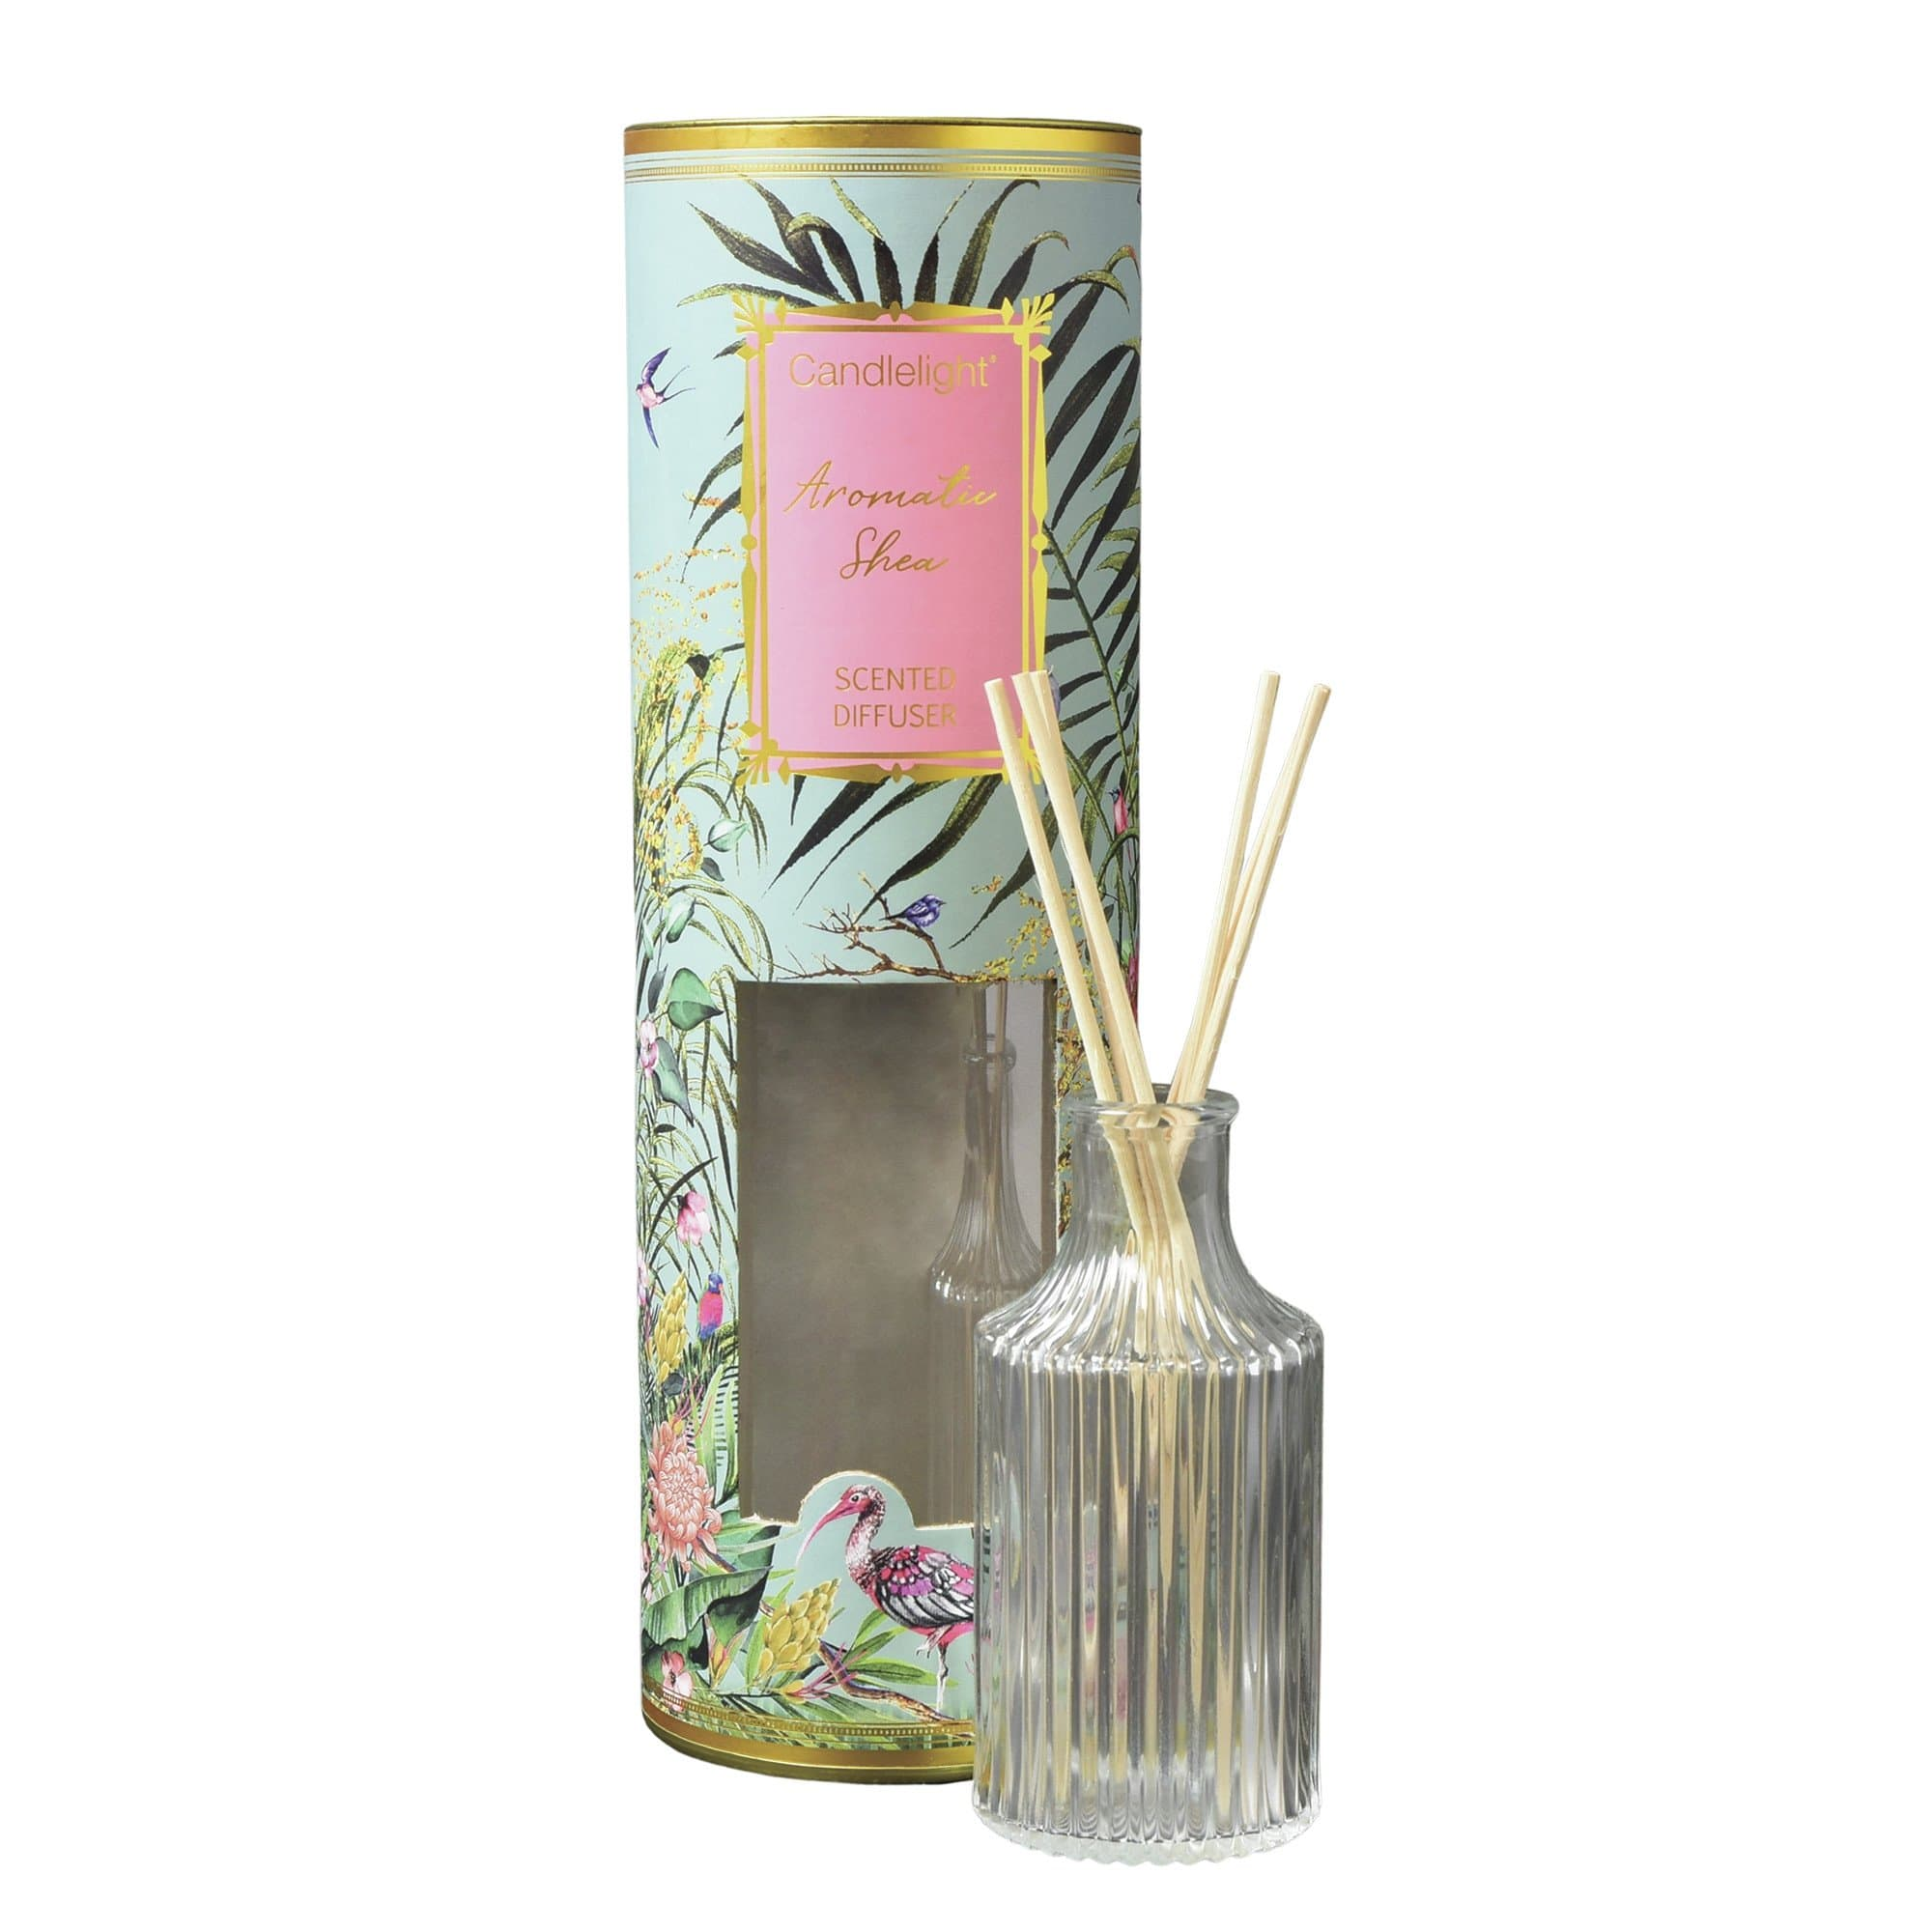 Candlelight Chinoiserie Reed Diffuser Aromatic Shea Scent 150ml 6PK